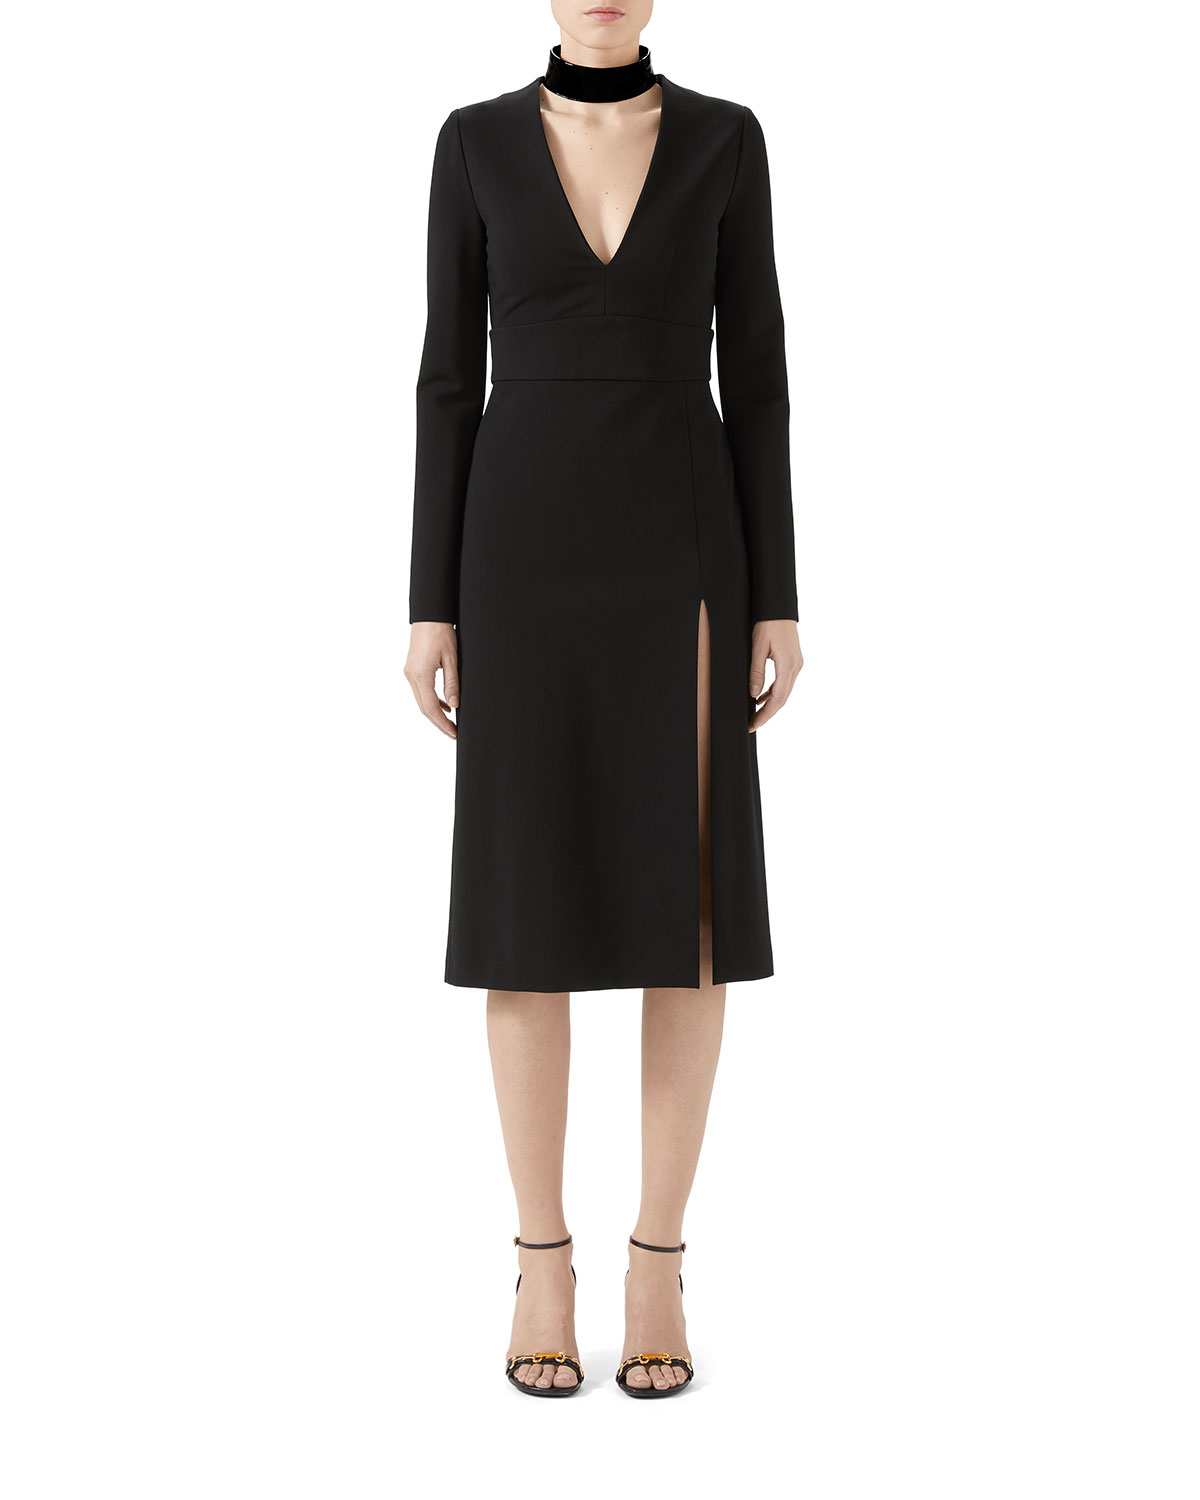 Gucci Compact Jersey Deep-V Dress with Detachable Collar